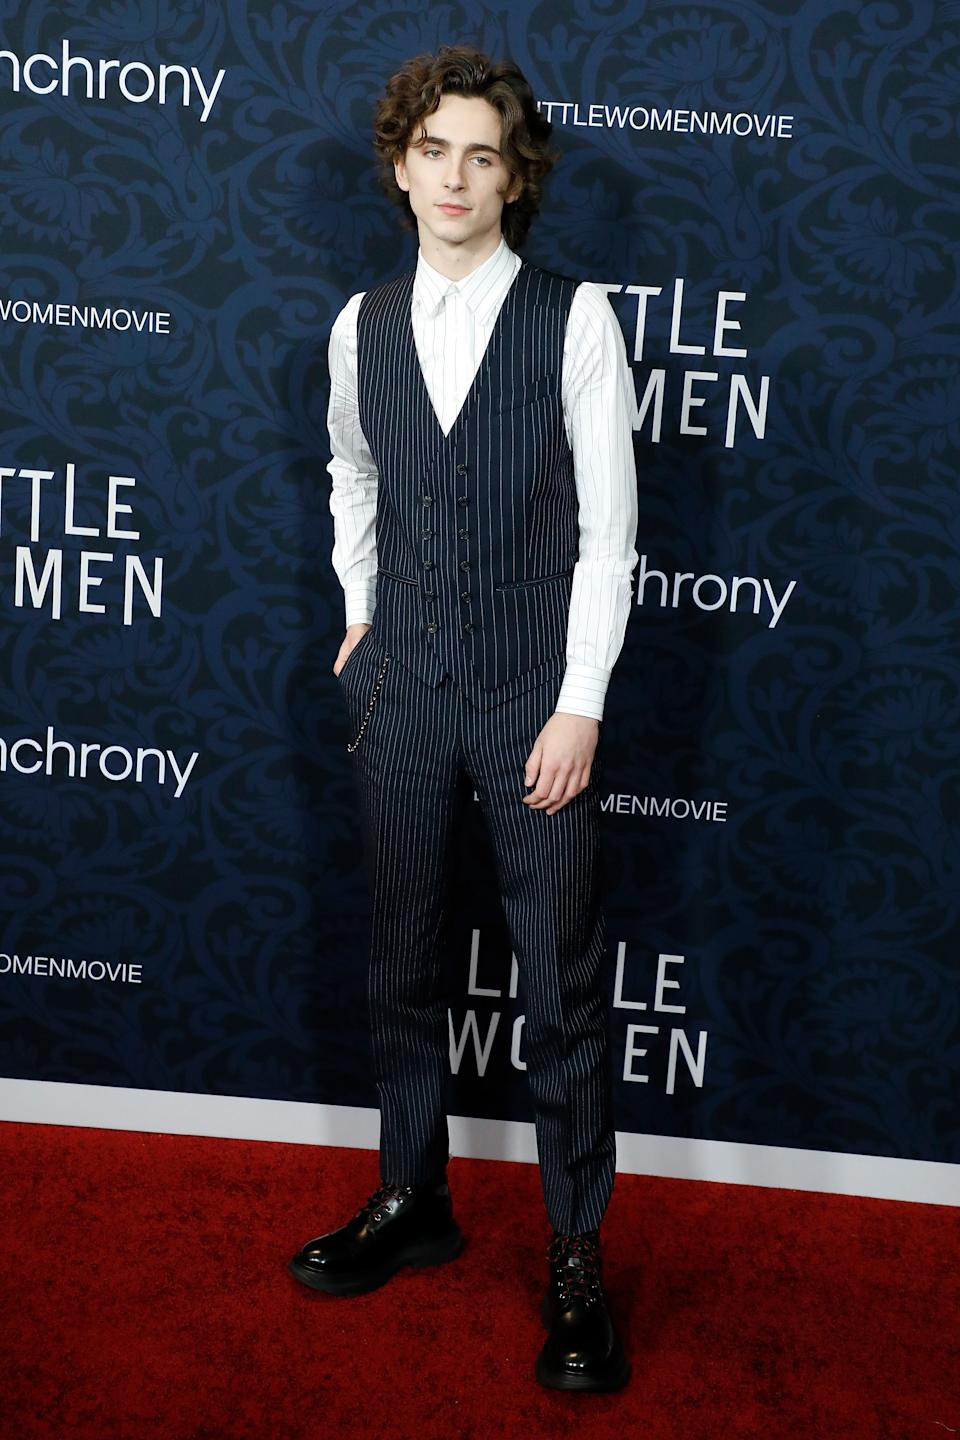 """NEW YORK, NEW YORK - DECEMBER 07: Timothee Chalamet attends the world premiere of """"Little Women"""" at Museum of Modern Art on December 07, 2019 in New York City. (Photo by Taylor Hill/WireImage,)"""